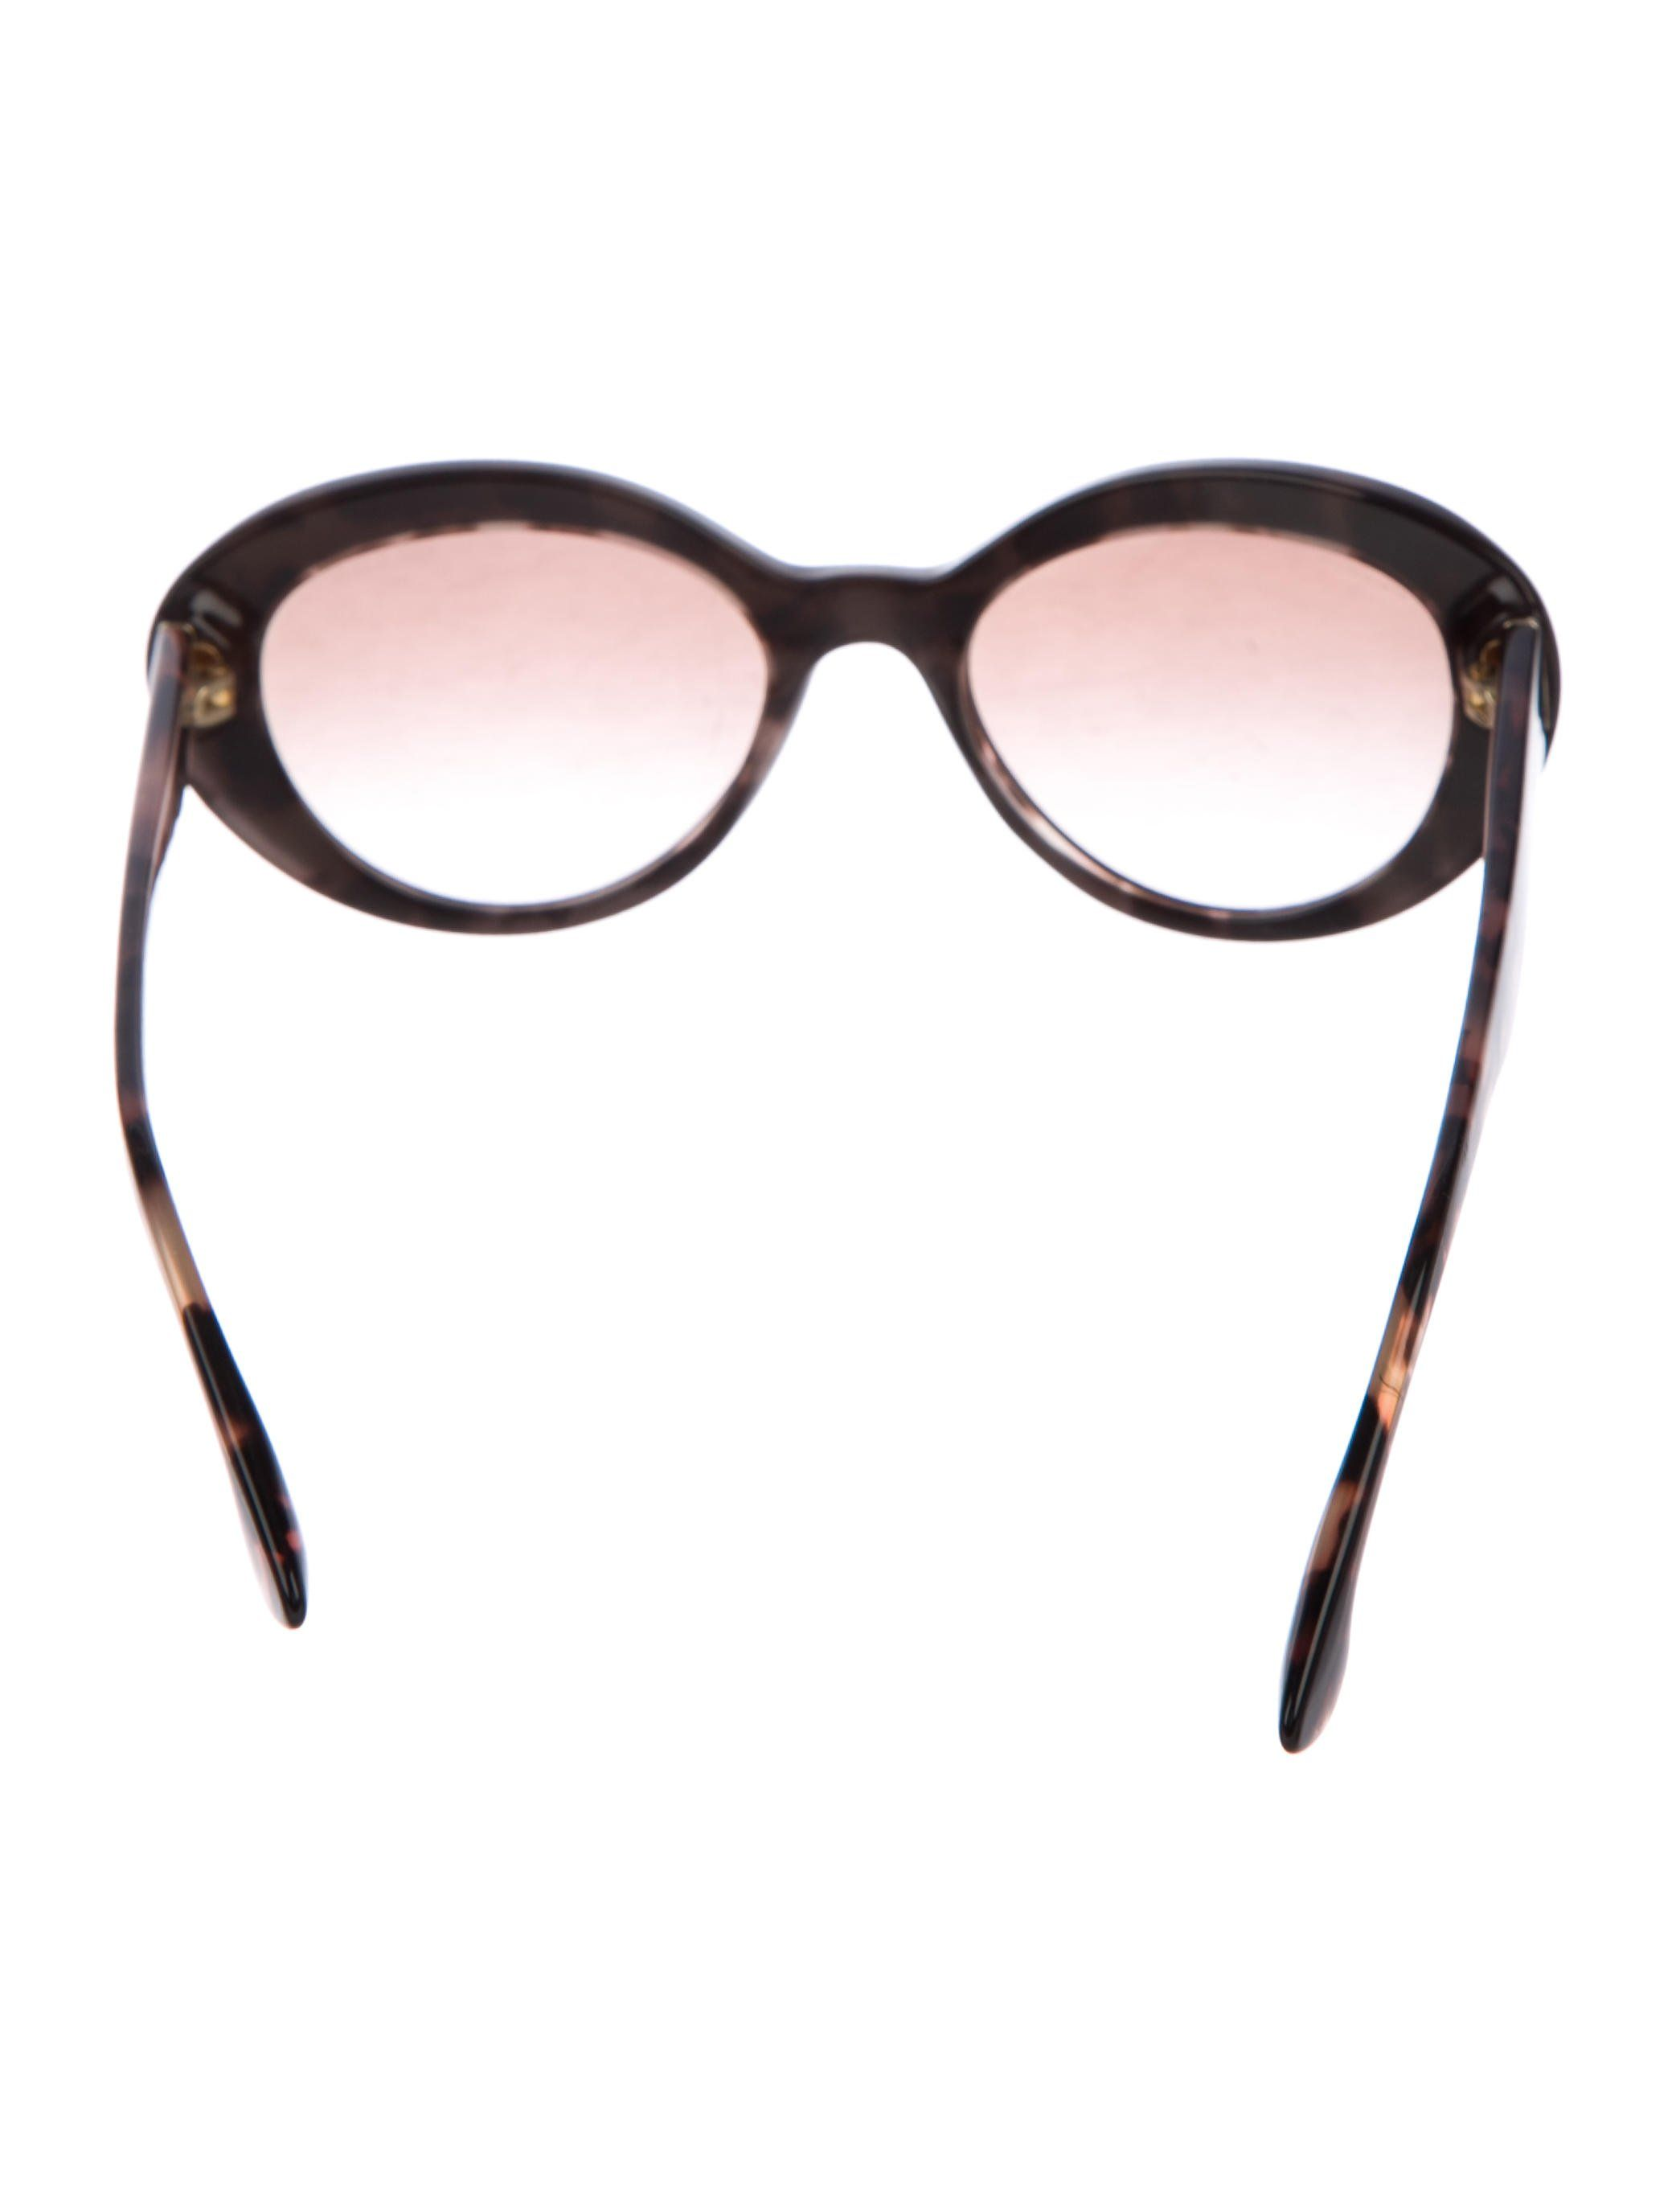 9753908dc843 Brown acetate Prada cat-eye sunglasses with tortoiseshell details at arms  featuring gold-tone accents and logos at temples and gradient lenses.